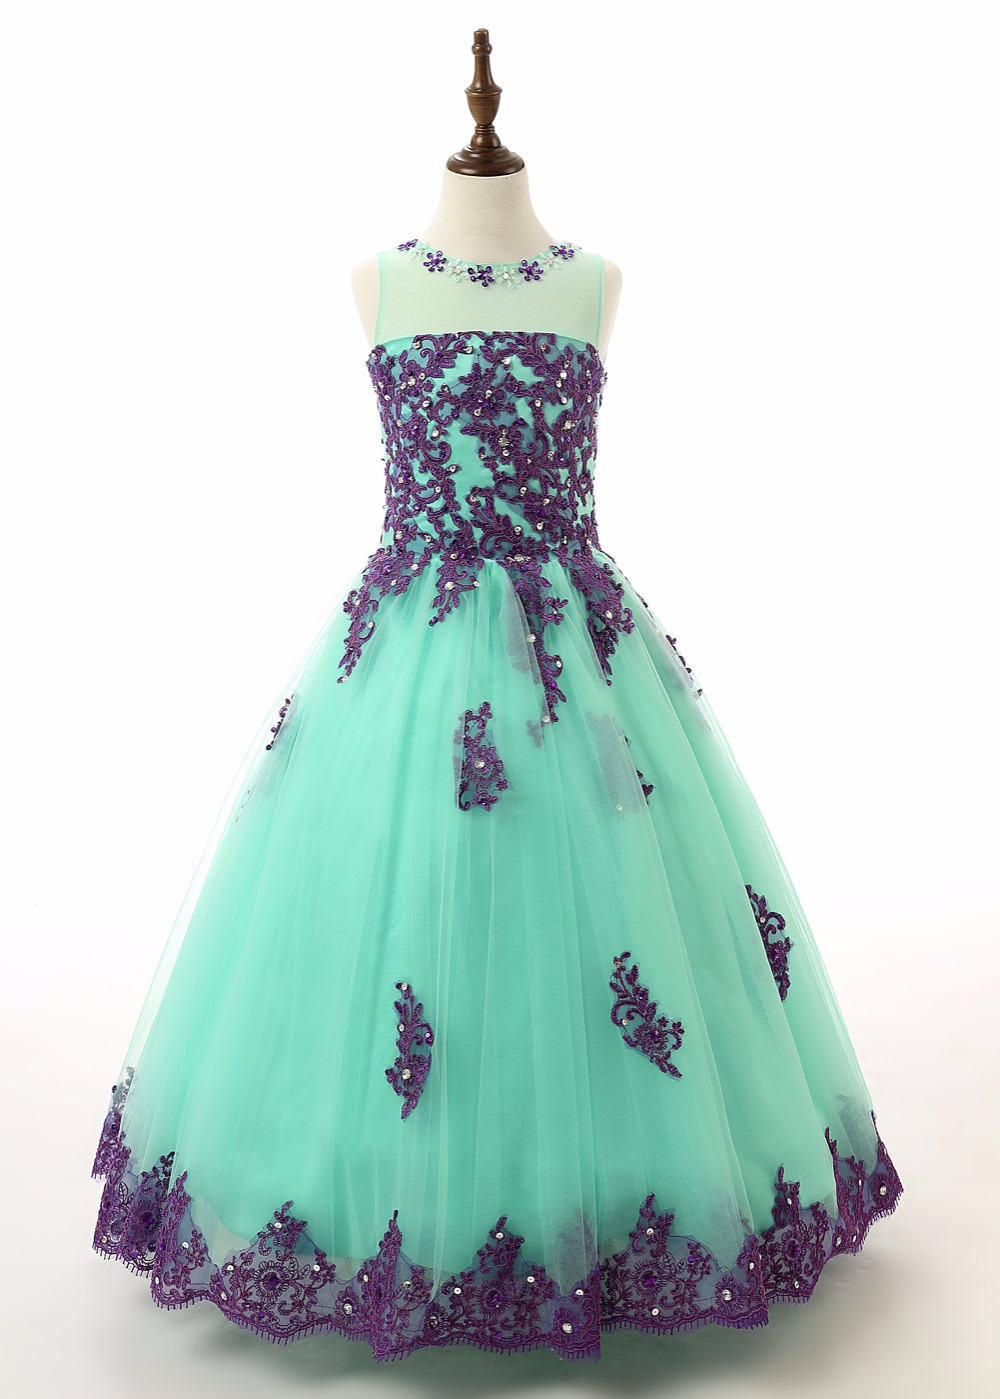 on sale Beads Appliques Kids Birthday Party Prom Dresses HiLo